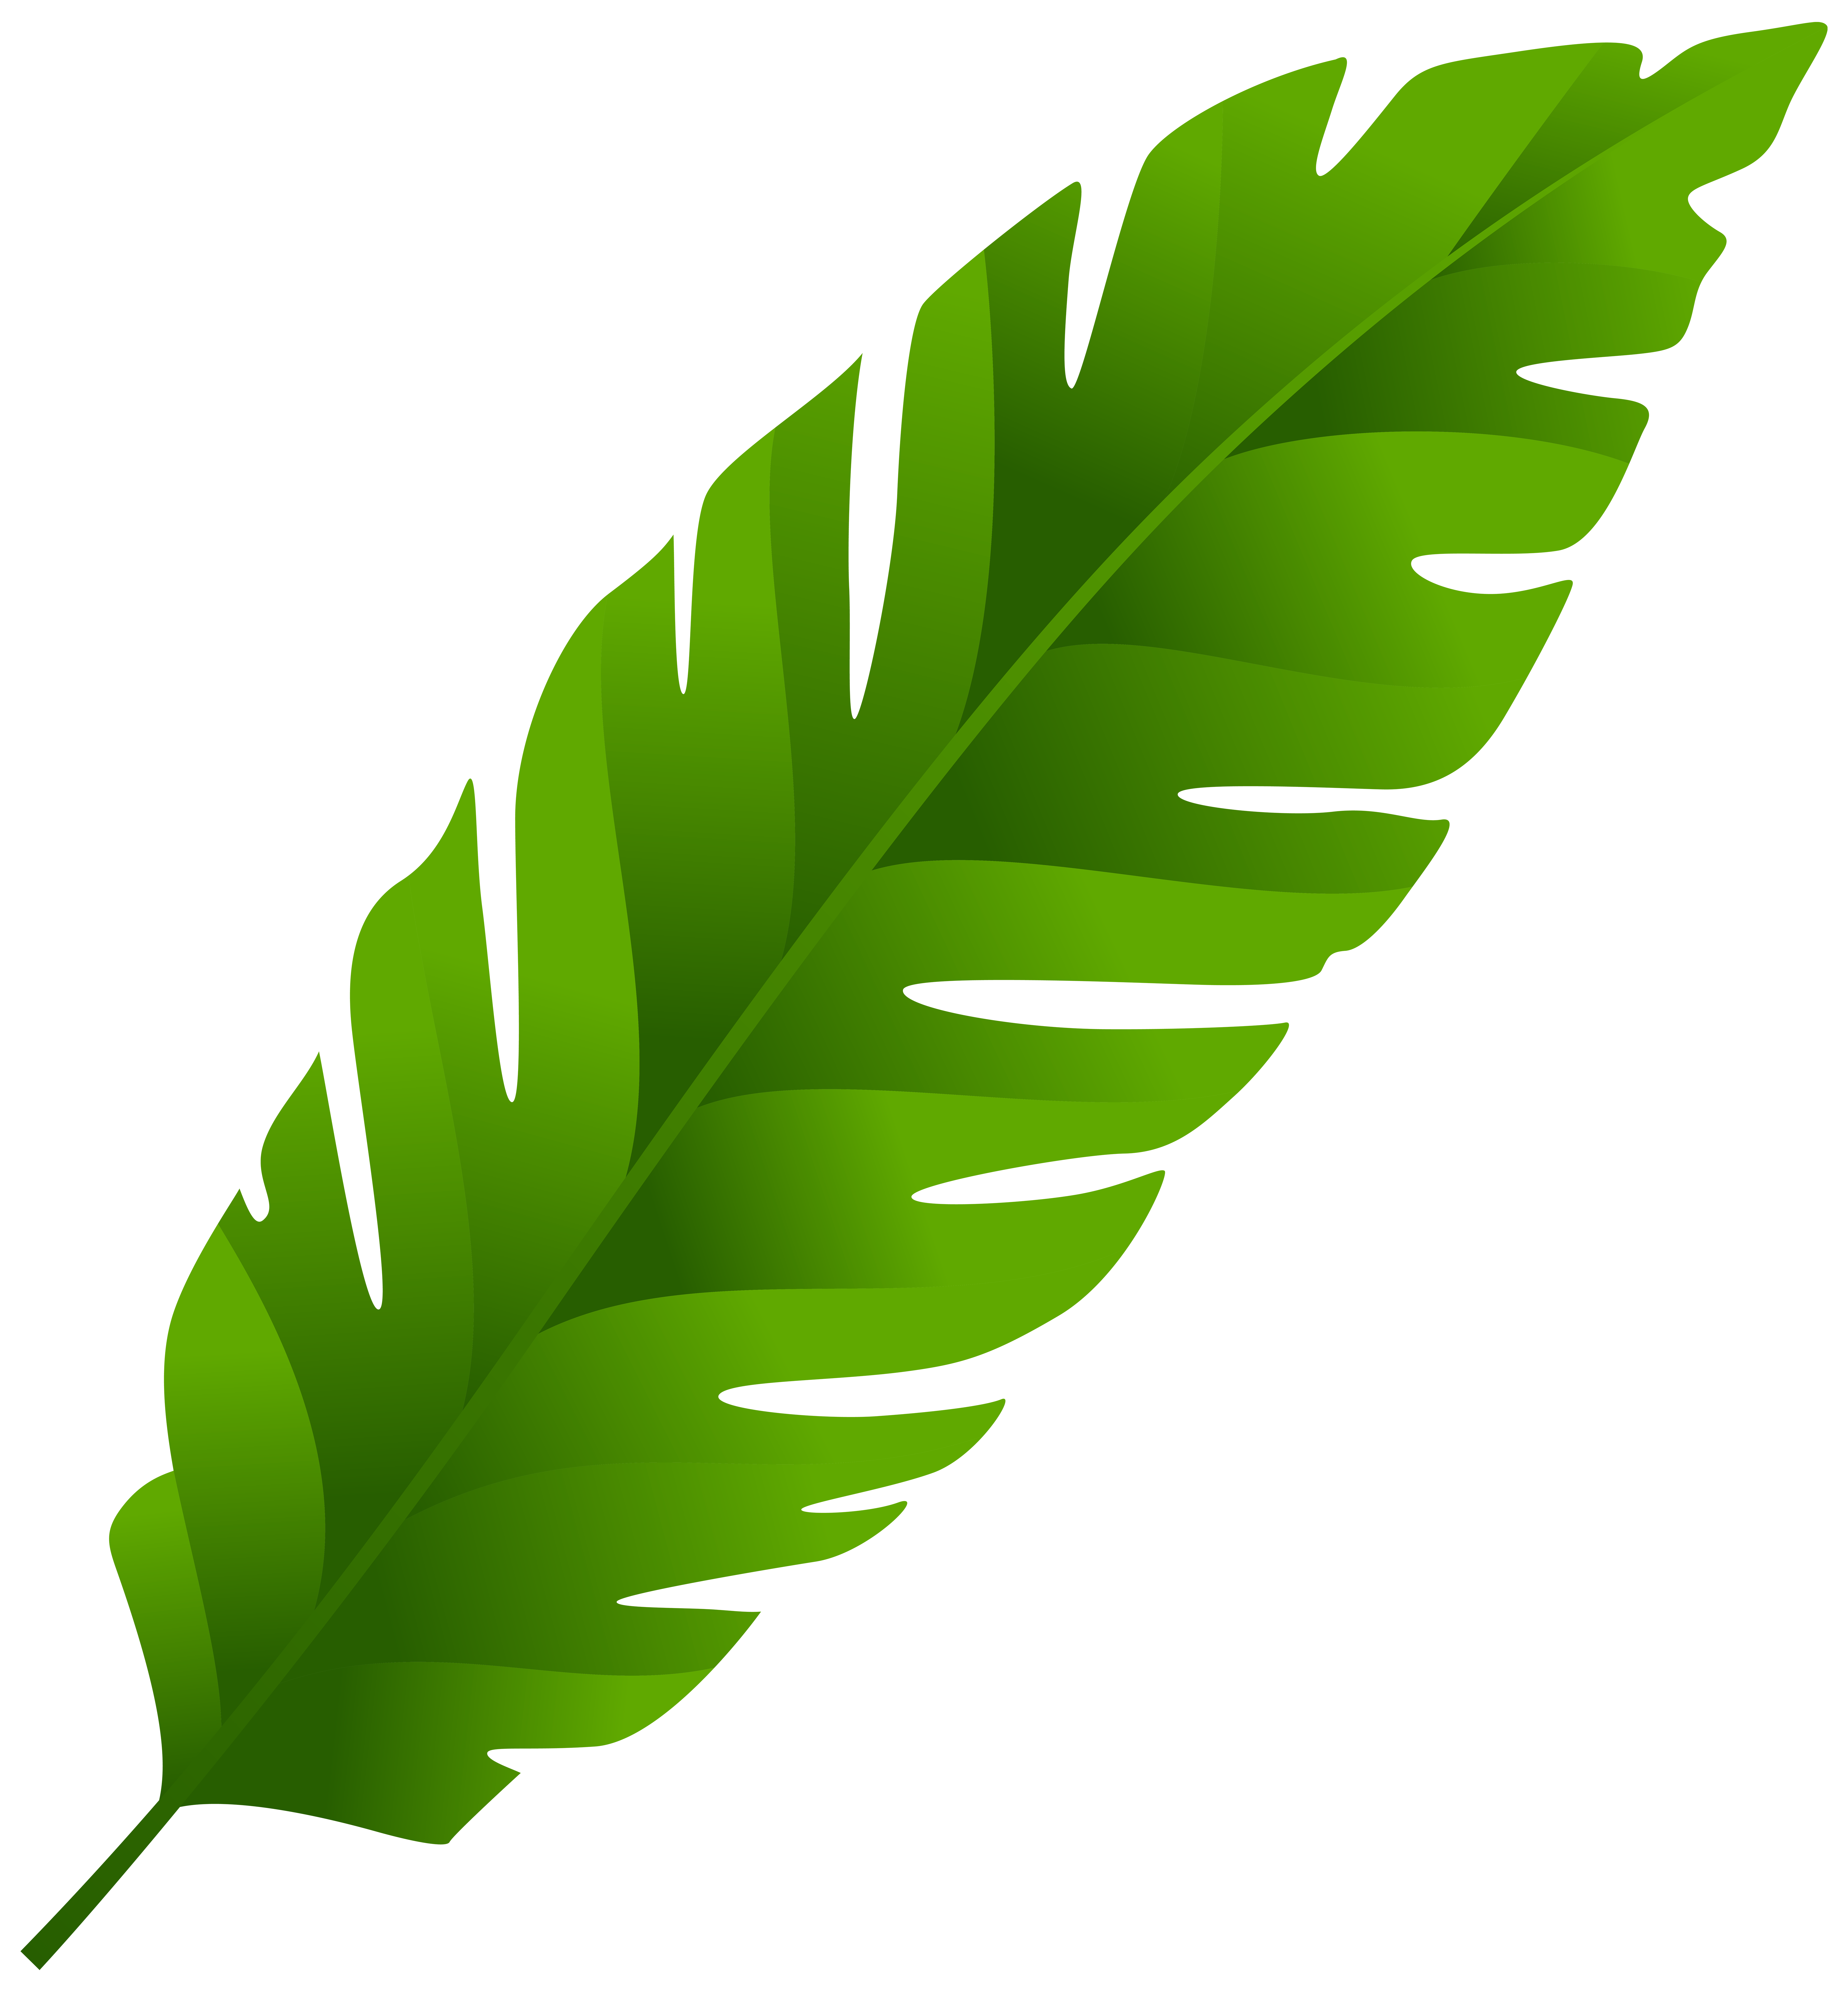 Jungle clipart leaves.